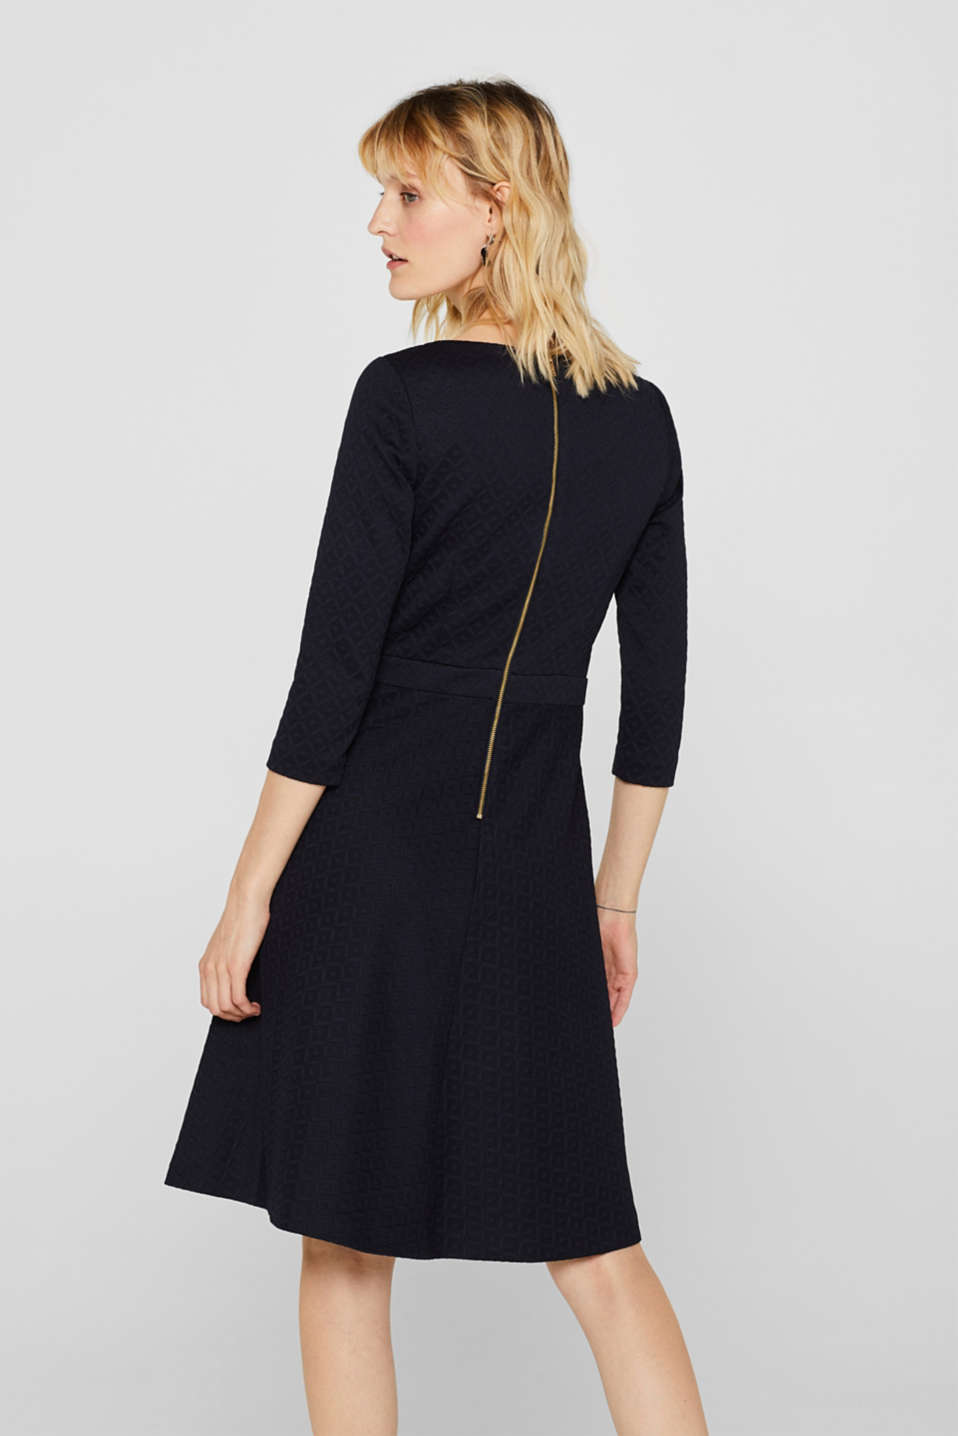 Textured stretch jersey dress, NAVY, detail image number 3